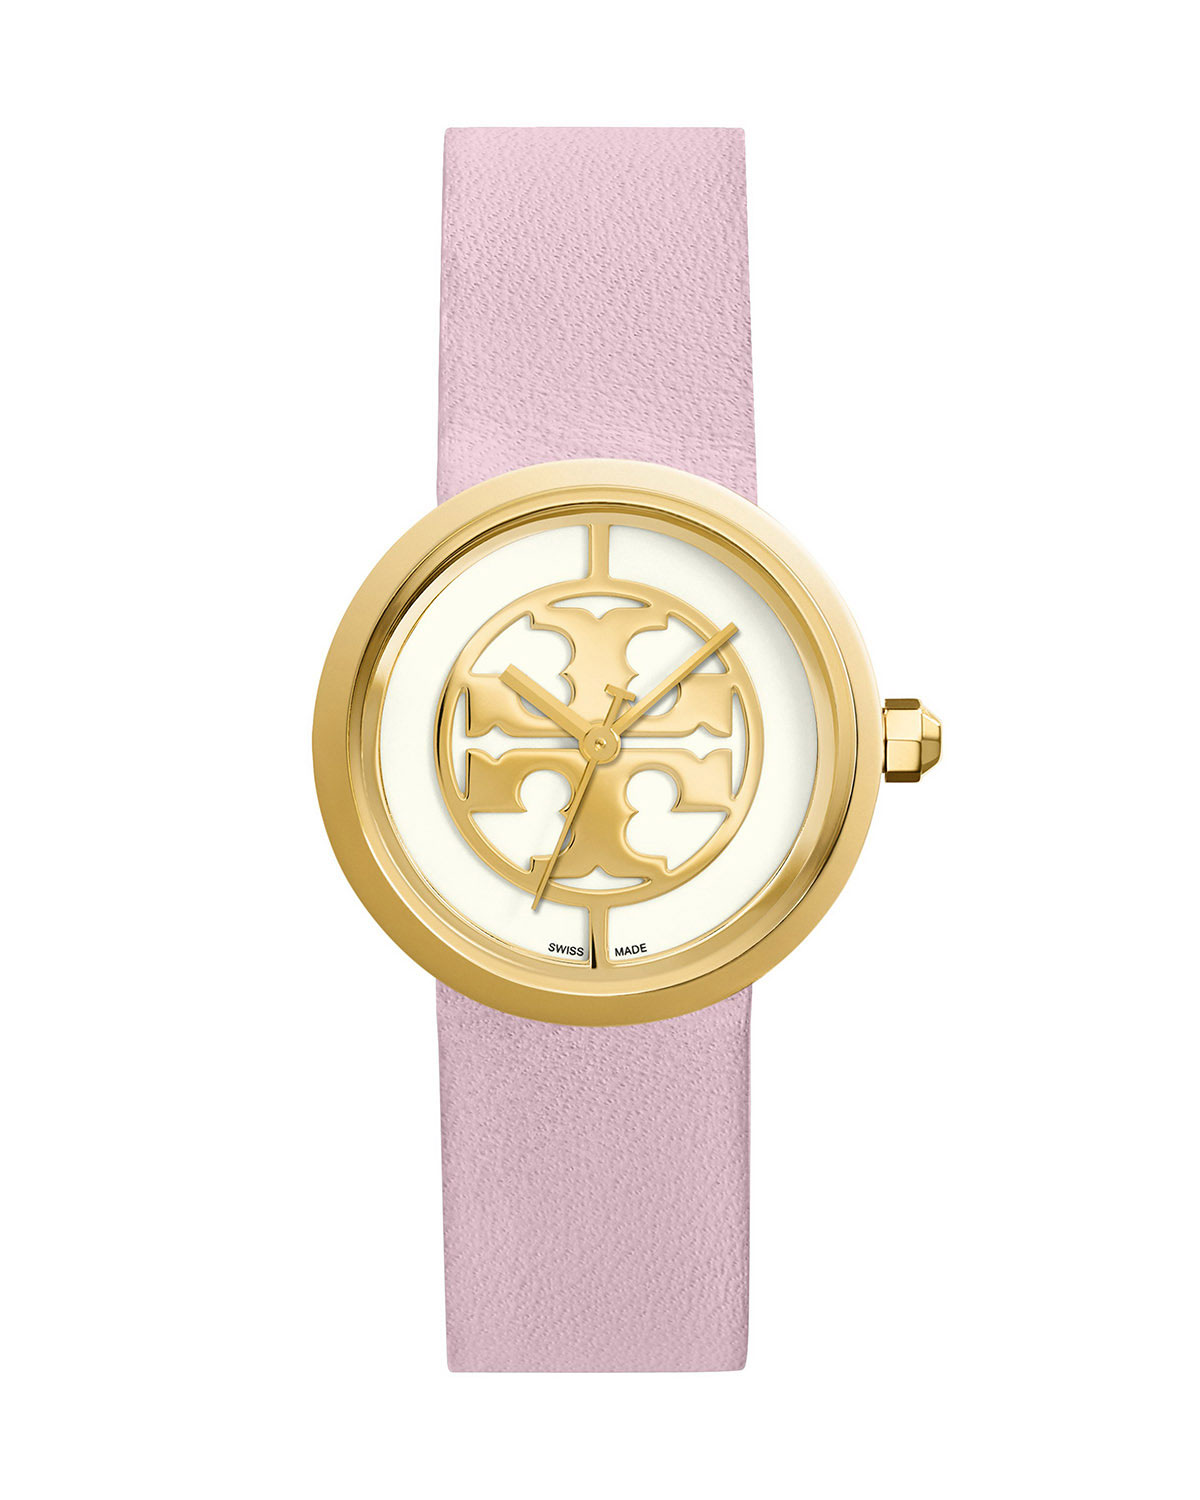 Tory Burch Reva Stainless Steel Watch, Light Pink